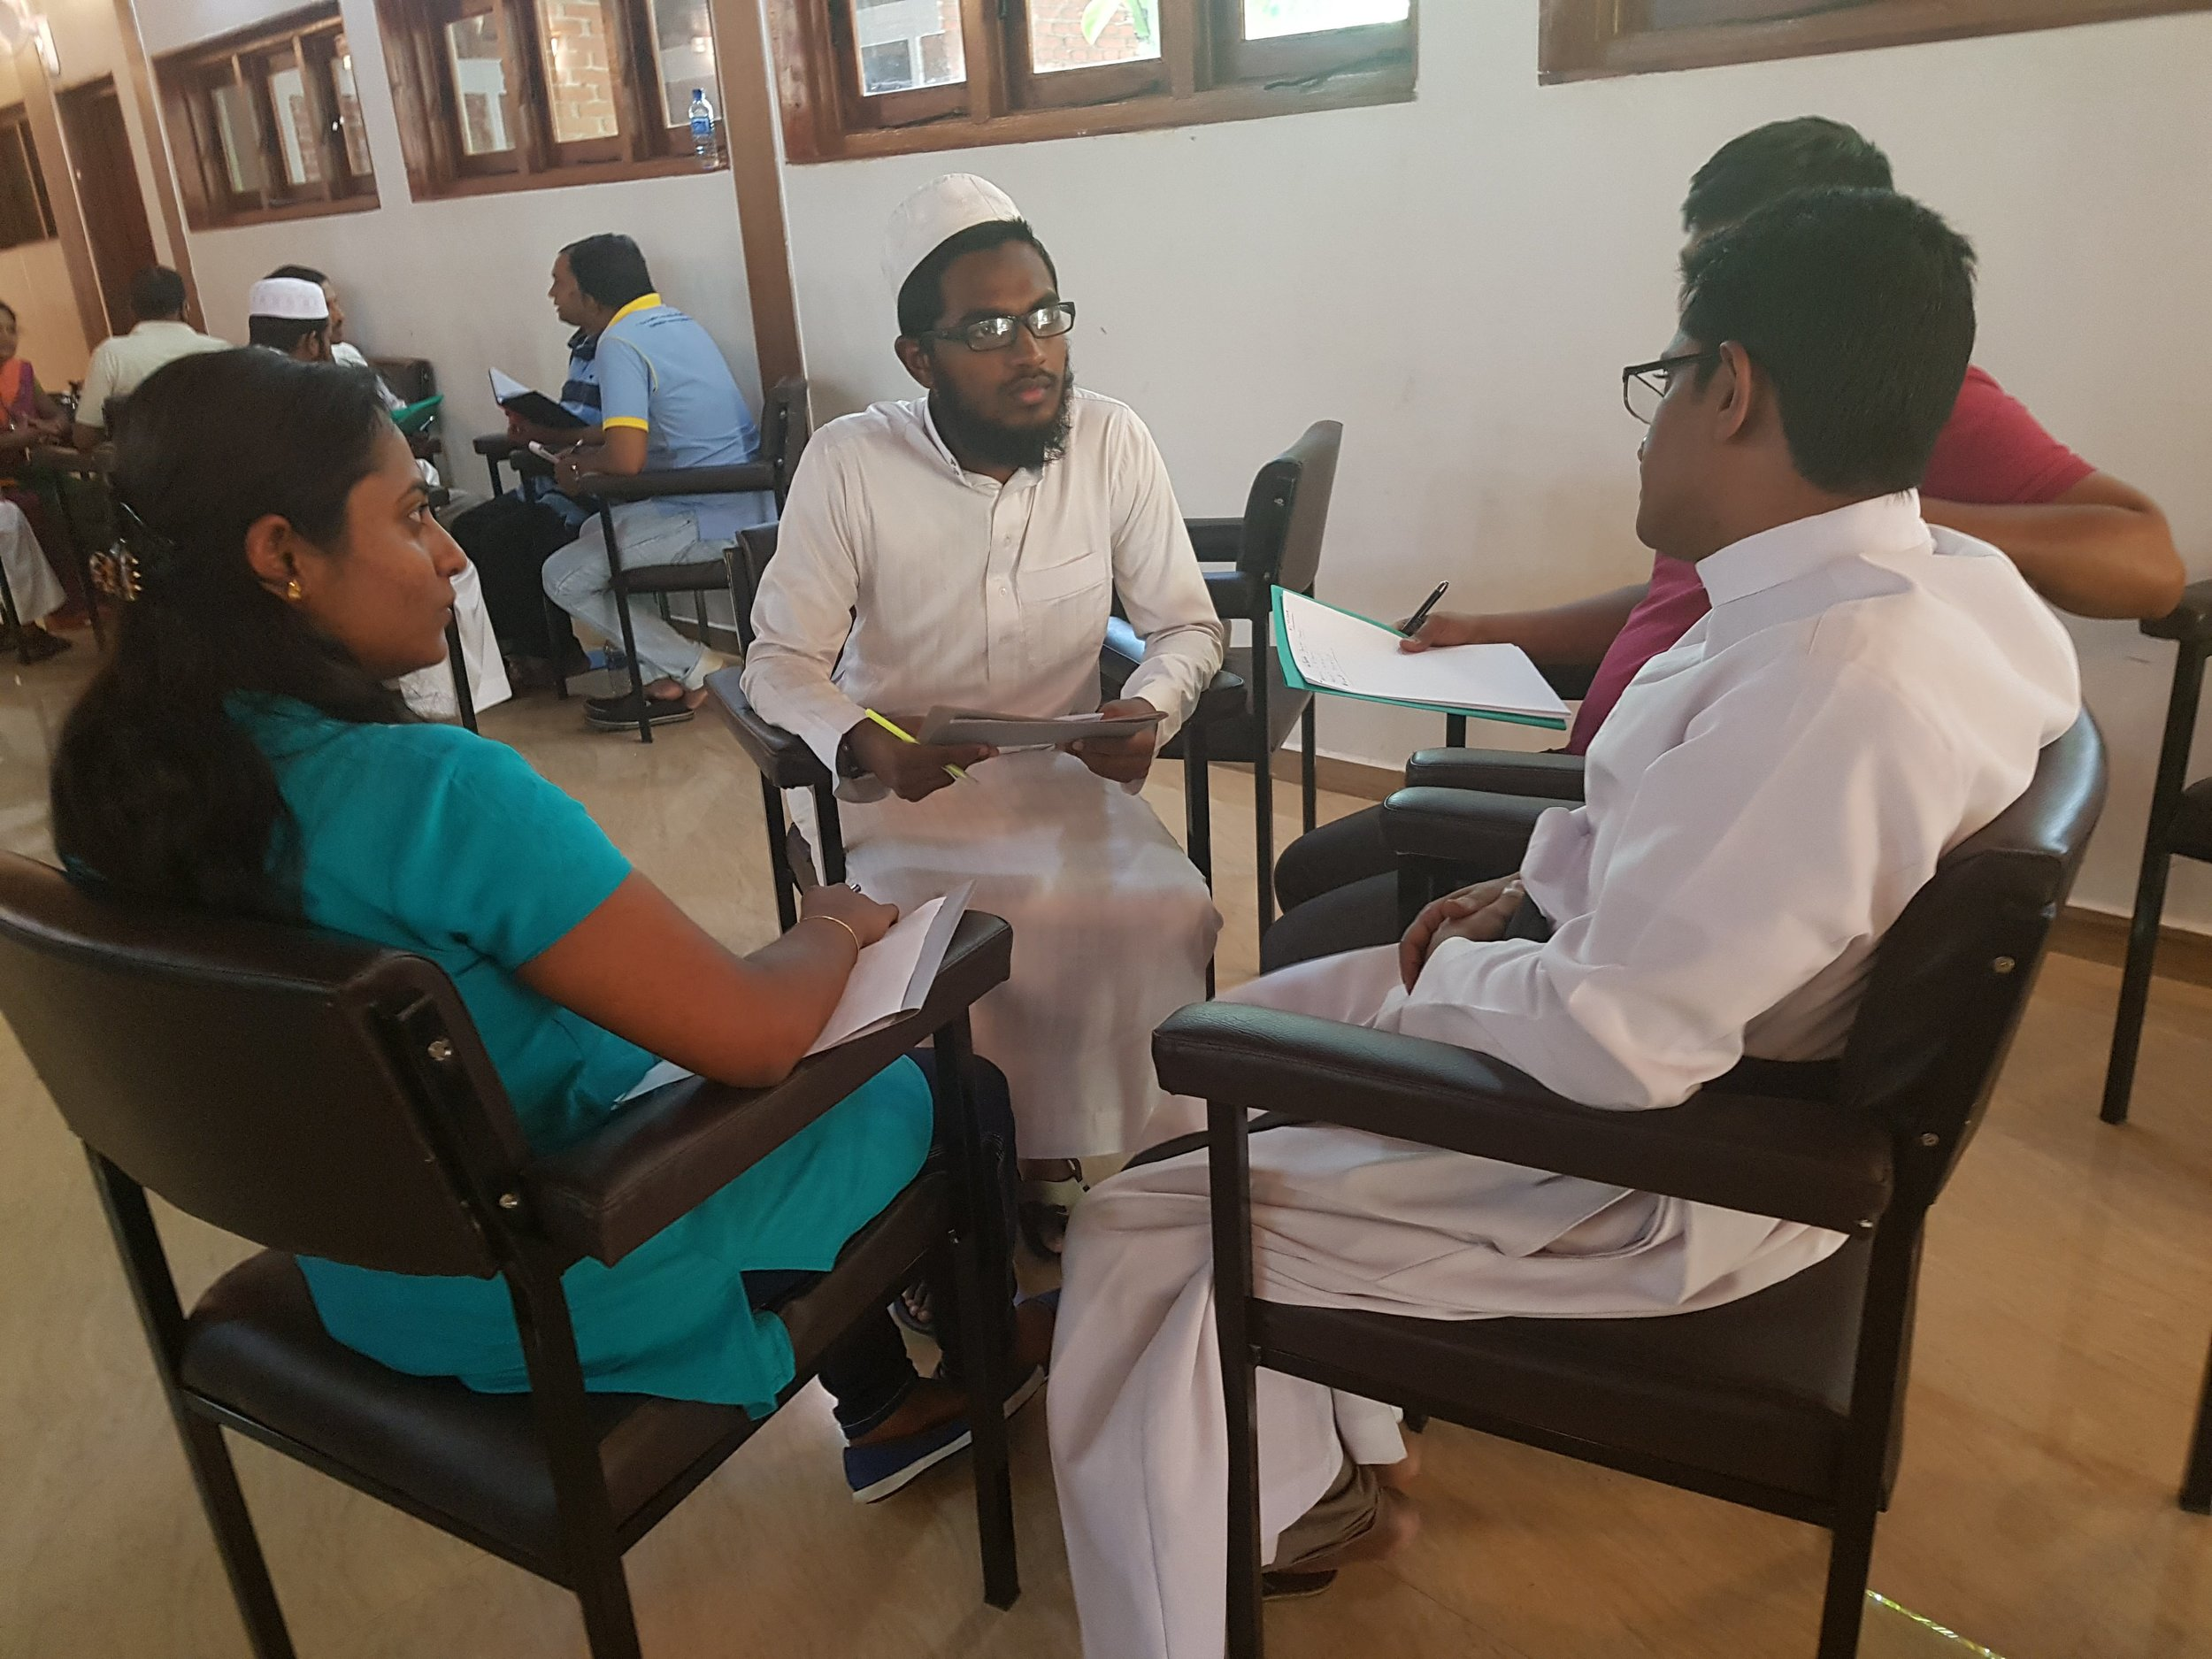 Hindu, Buddhist, Christian, and Muslim Leaders all participated in OMNIA's Leadership Training Event in Kandy, Sri Lanka in February of 2018